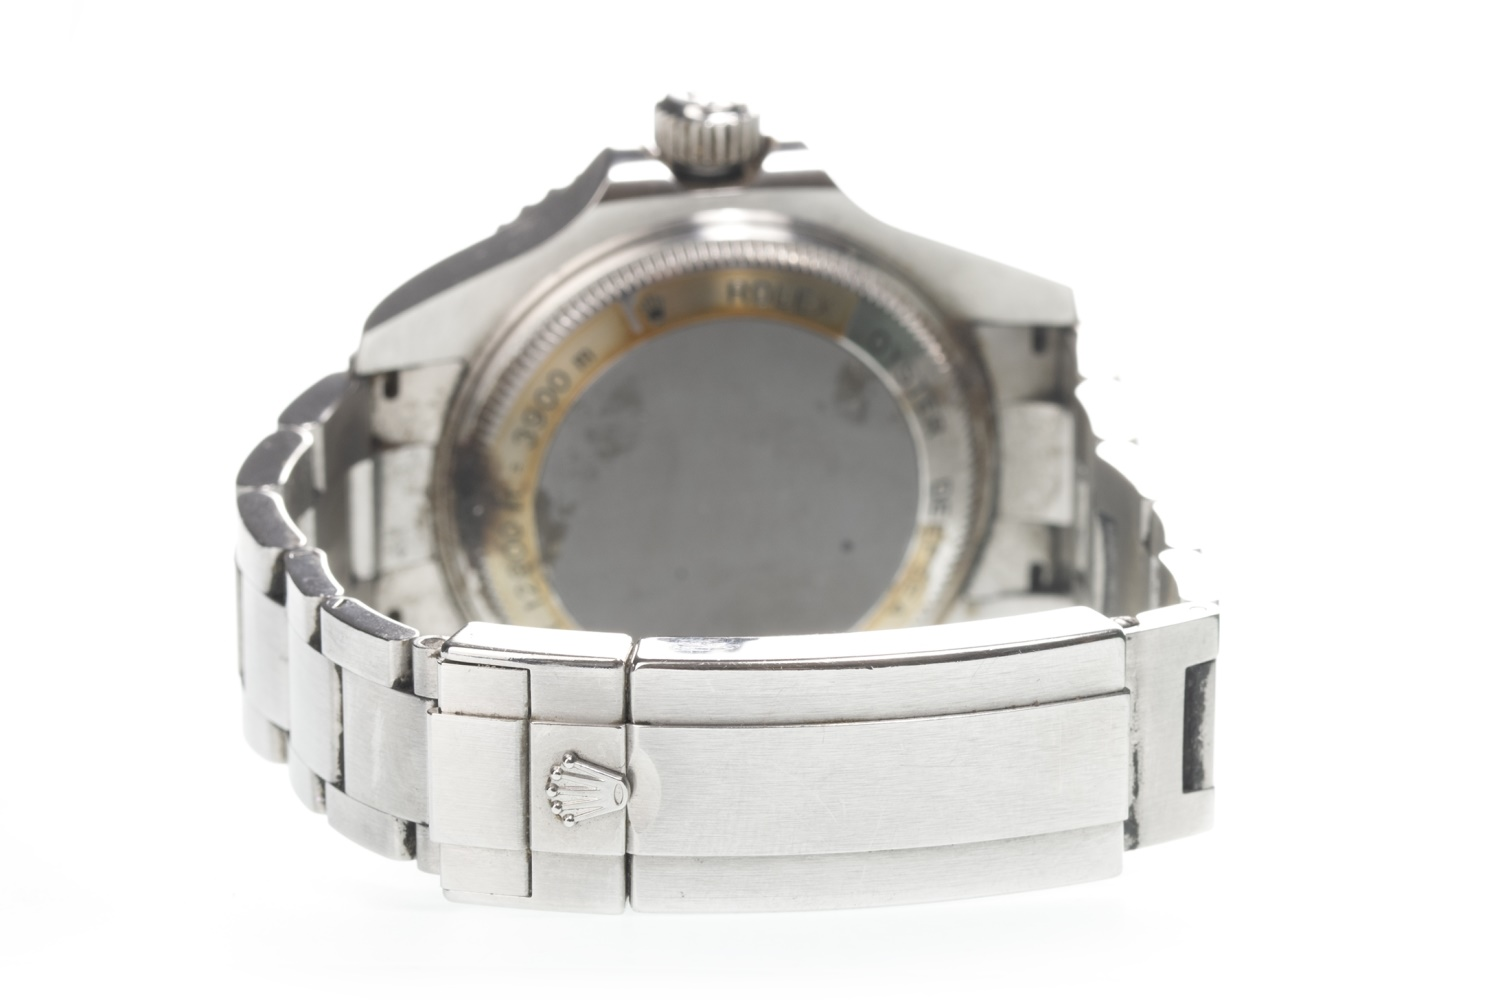 Lot 861 - A GENTLEMAN'S ROLEX DEEP SEA SEA-DWELLER STAINLESS STEEL AUTOMATIC WRIST WATCH,